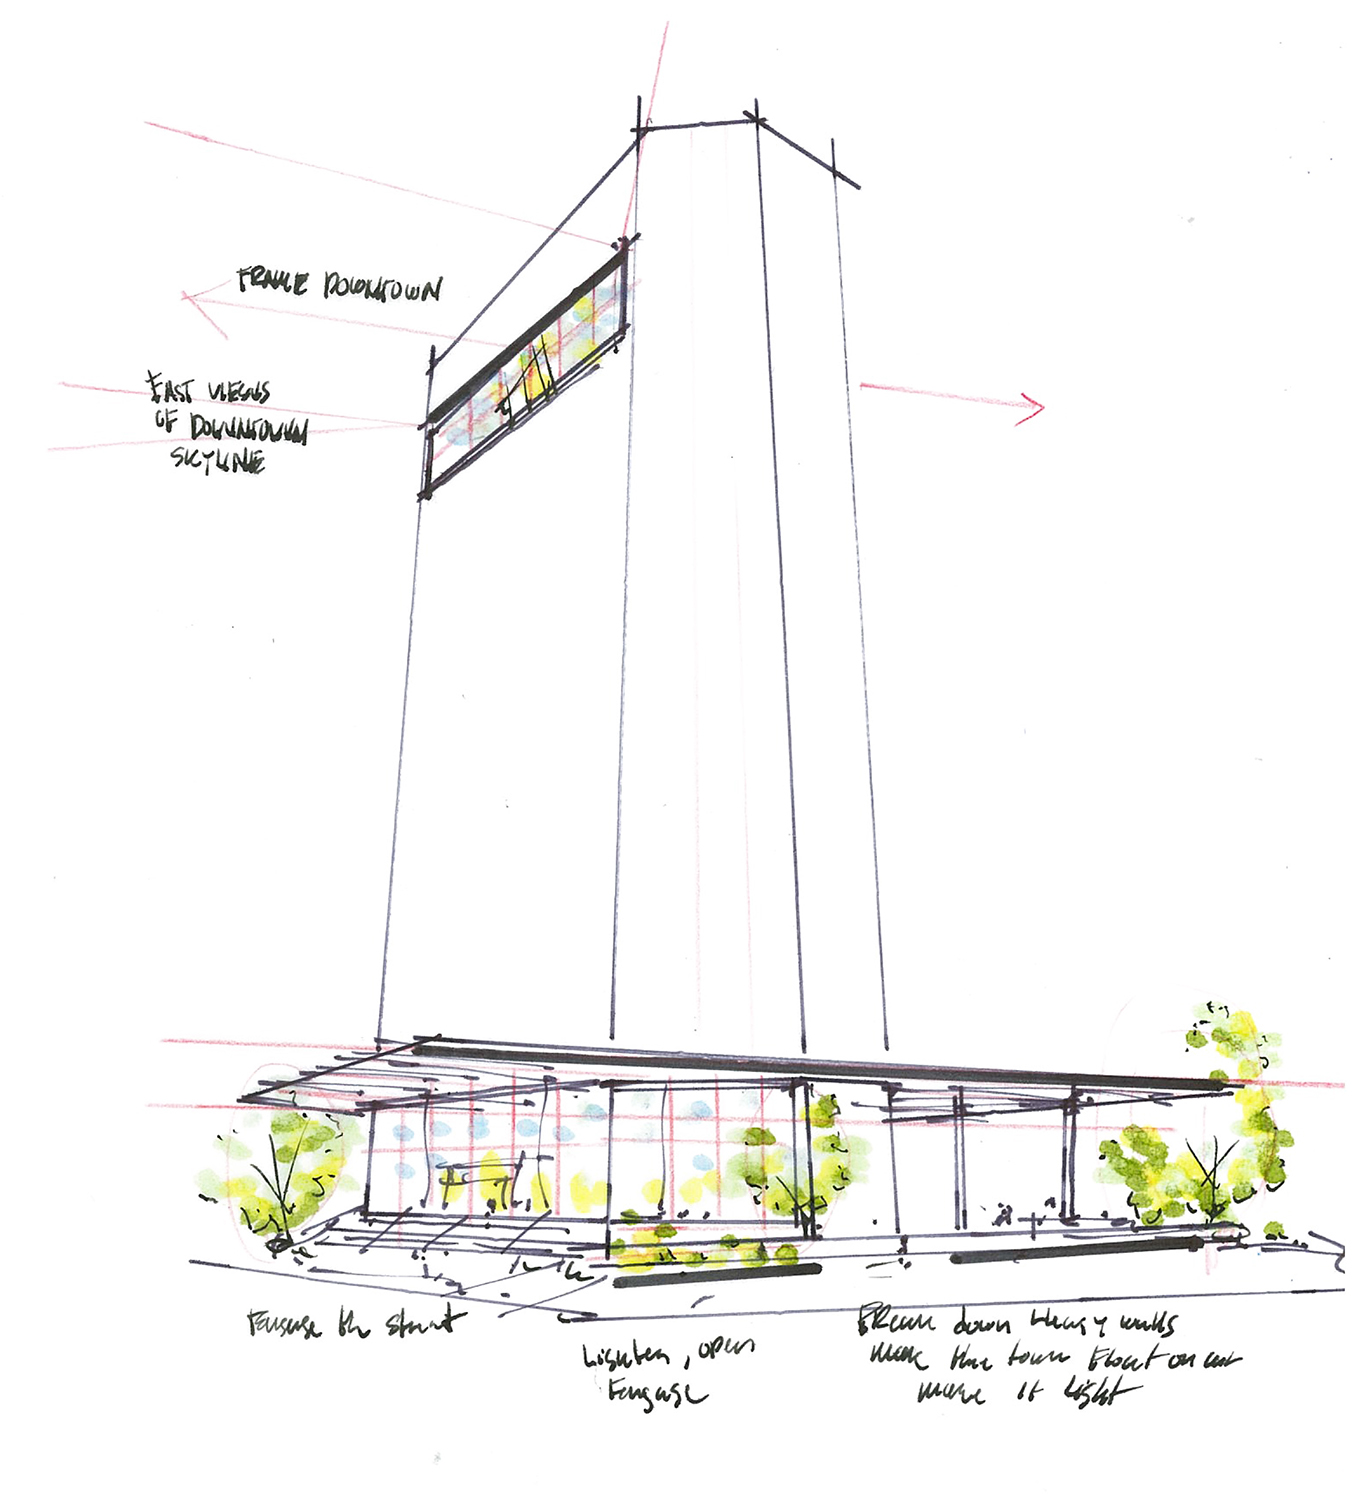 400 Record from the view of Market Street and Wood Street conceptual sketch Ian Zapata}